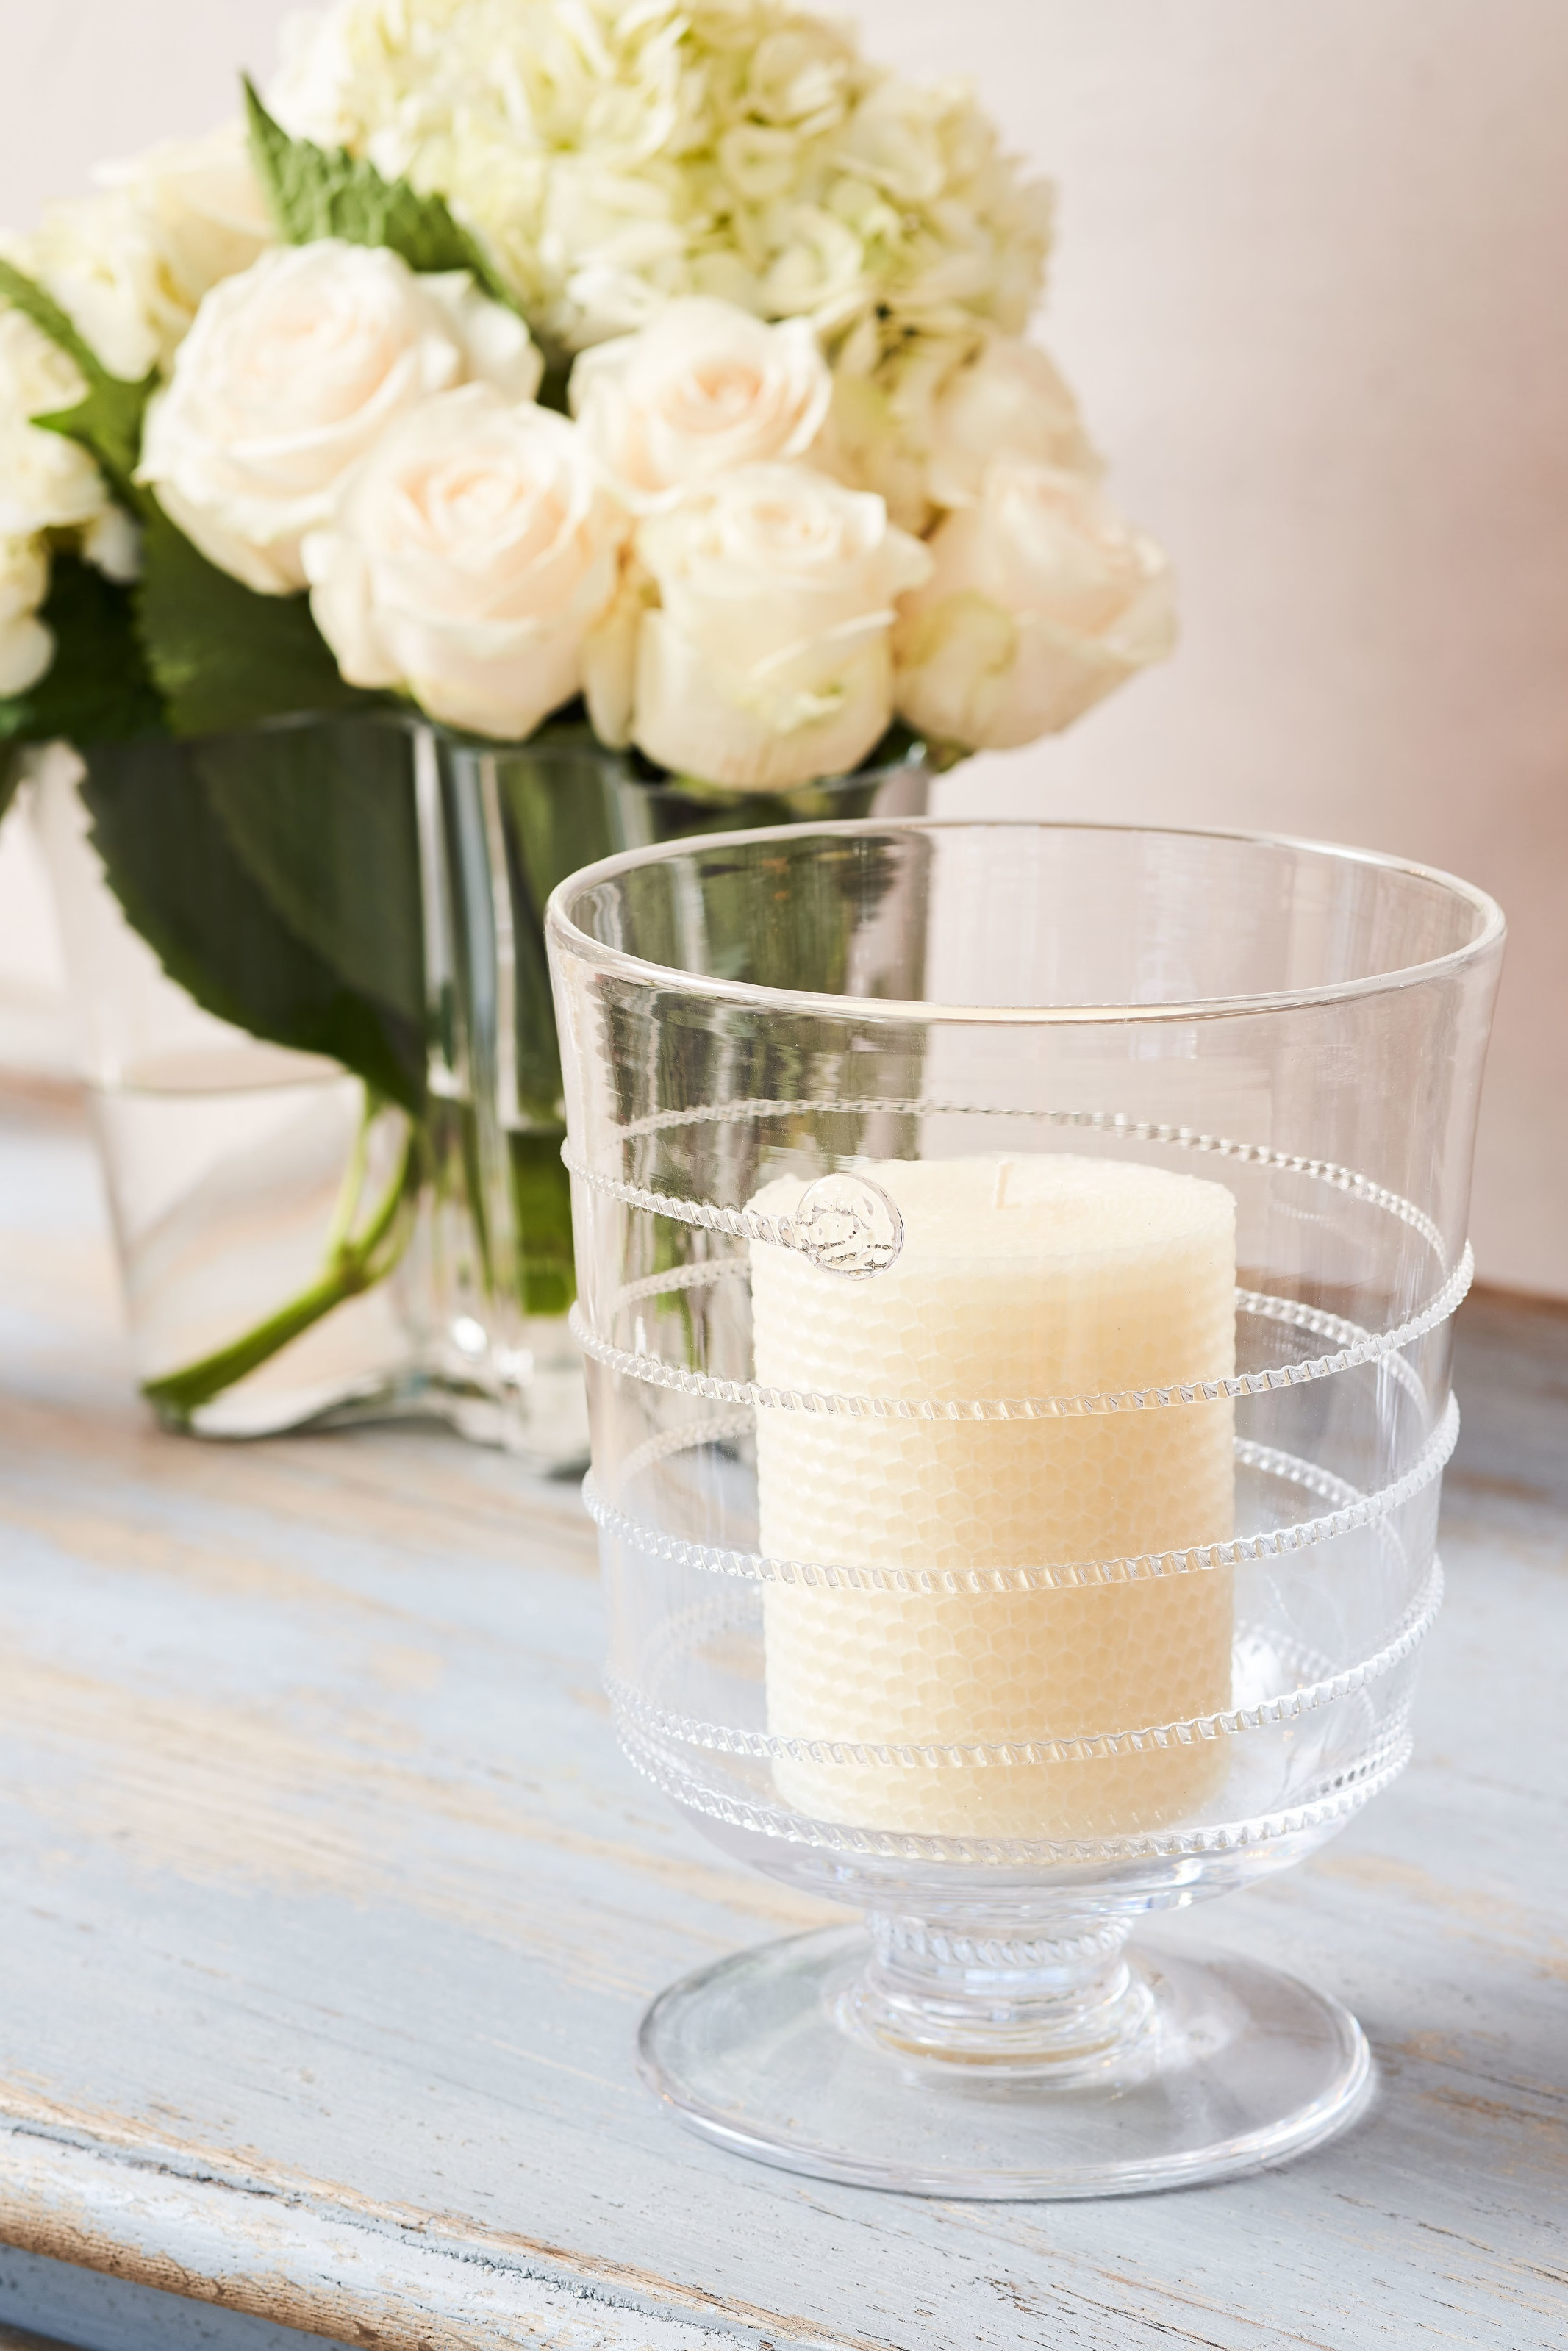 Hurricane with delicate thread motif  150.00  Honeycomb Pillar Candle, additional sizes available  31.00